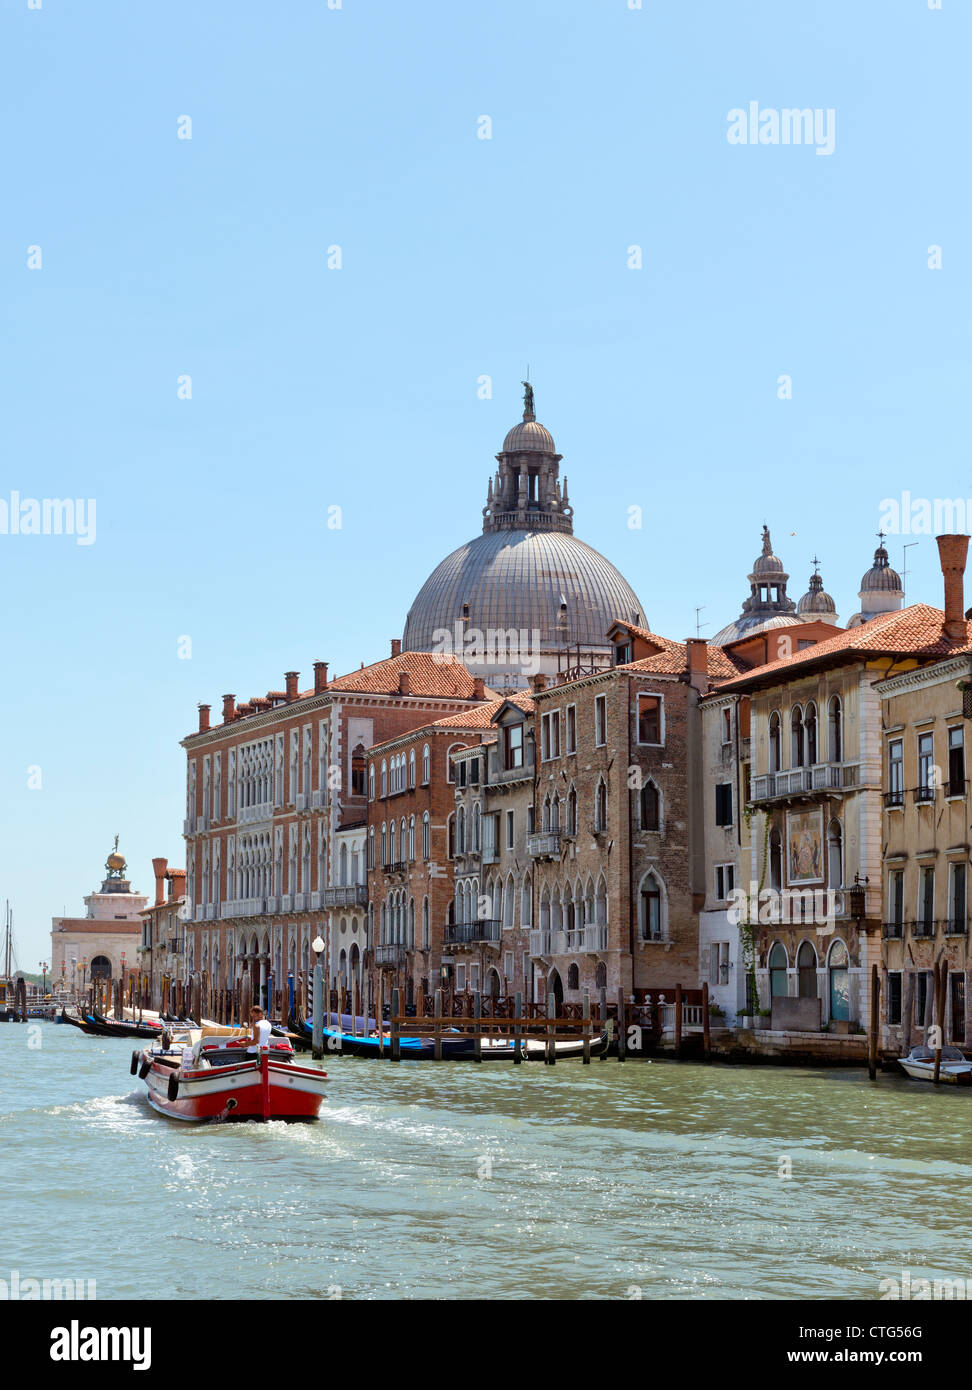 Cityscape on the Grand Canal Venice Italy Stock Photo